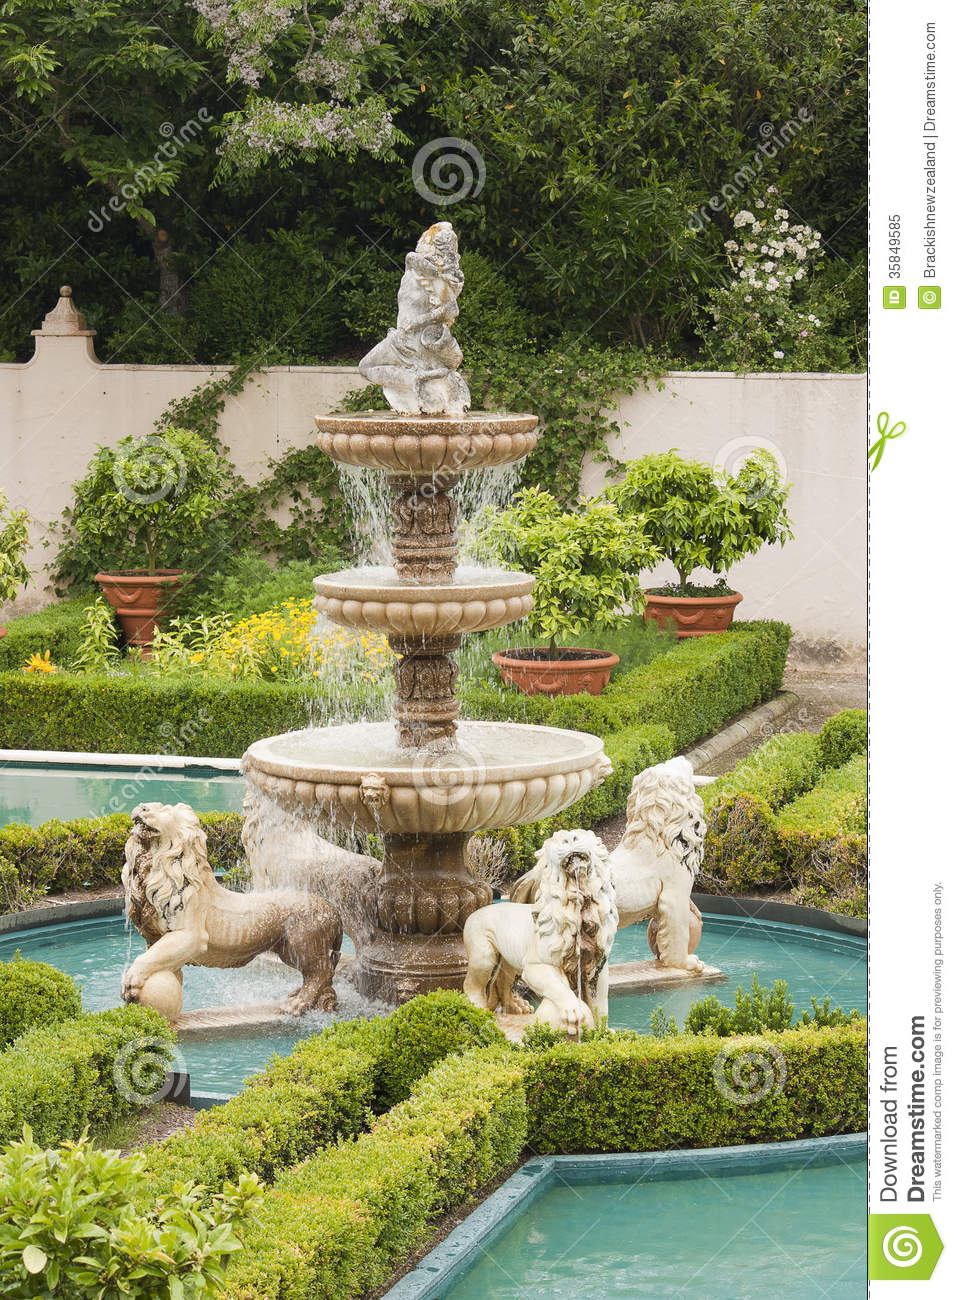 Water fountains outdoor new zealand - Italian Renaissance Garden Fountain